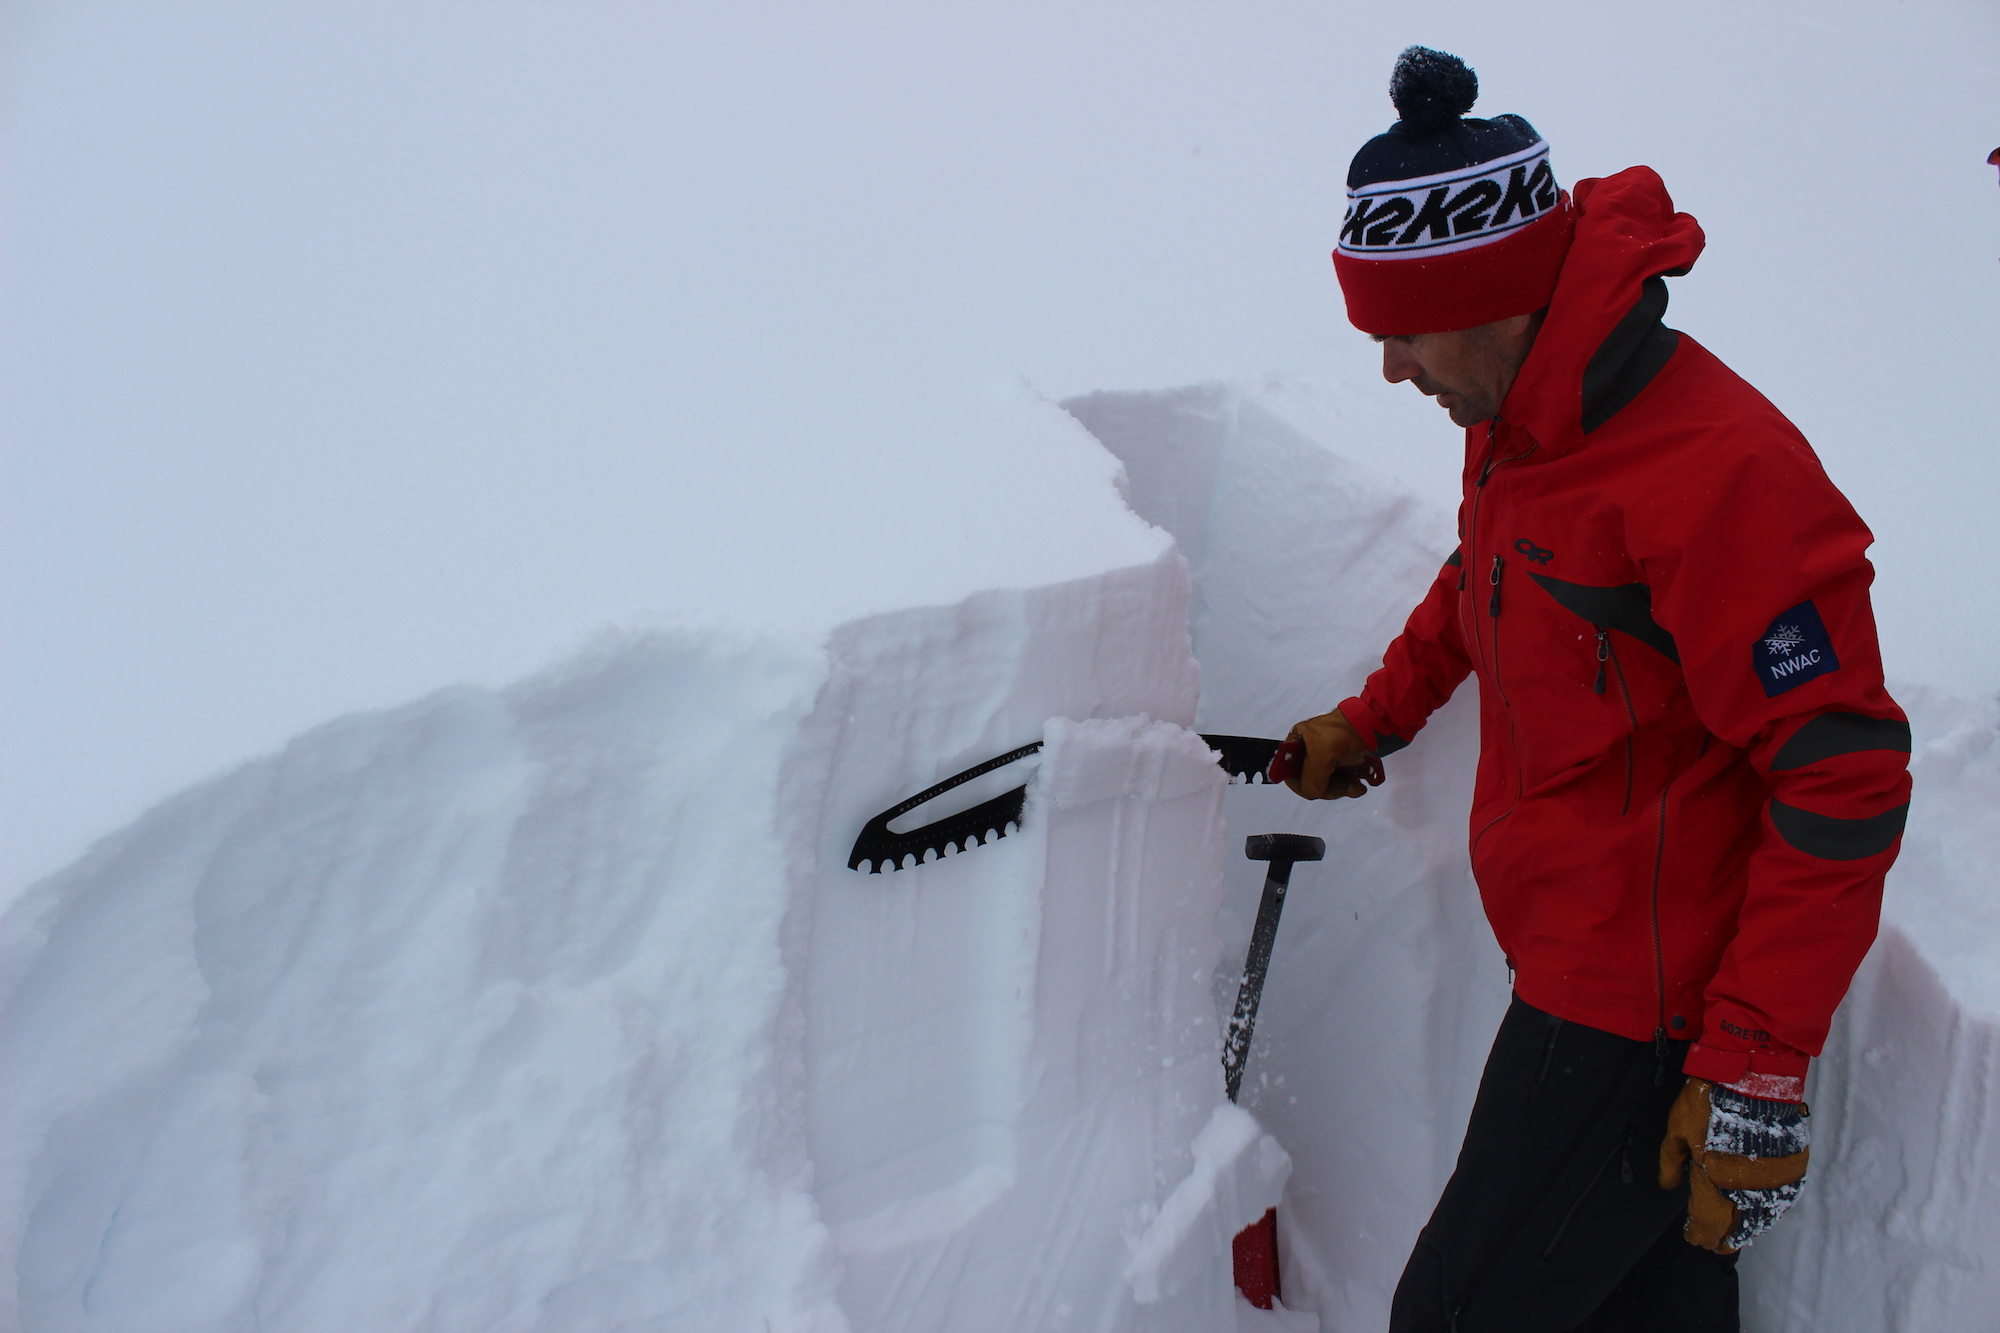 Allyn saws down the snow in a test pit to check for stability.